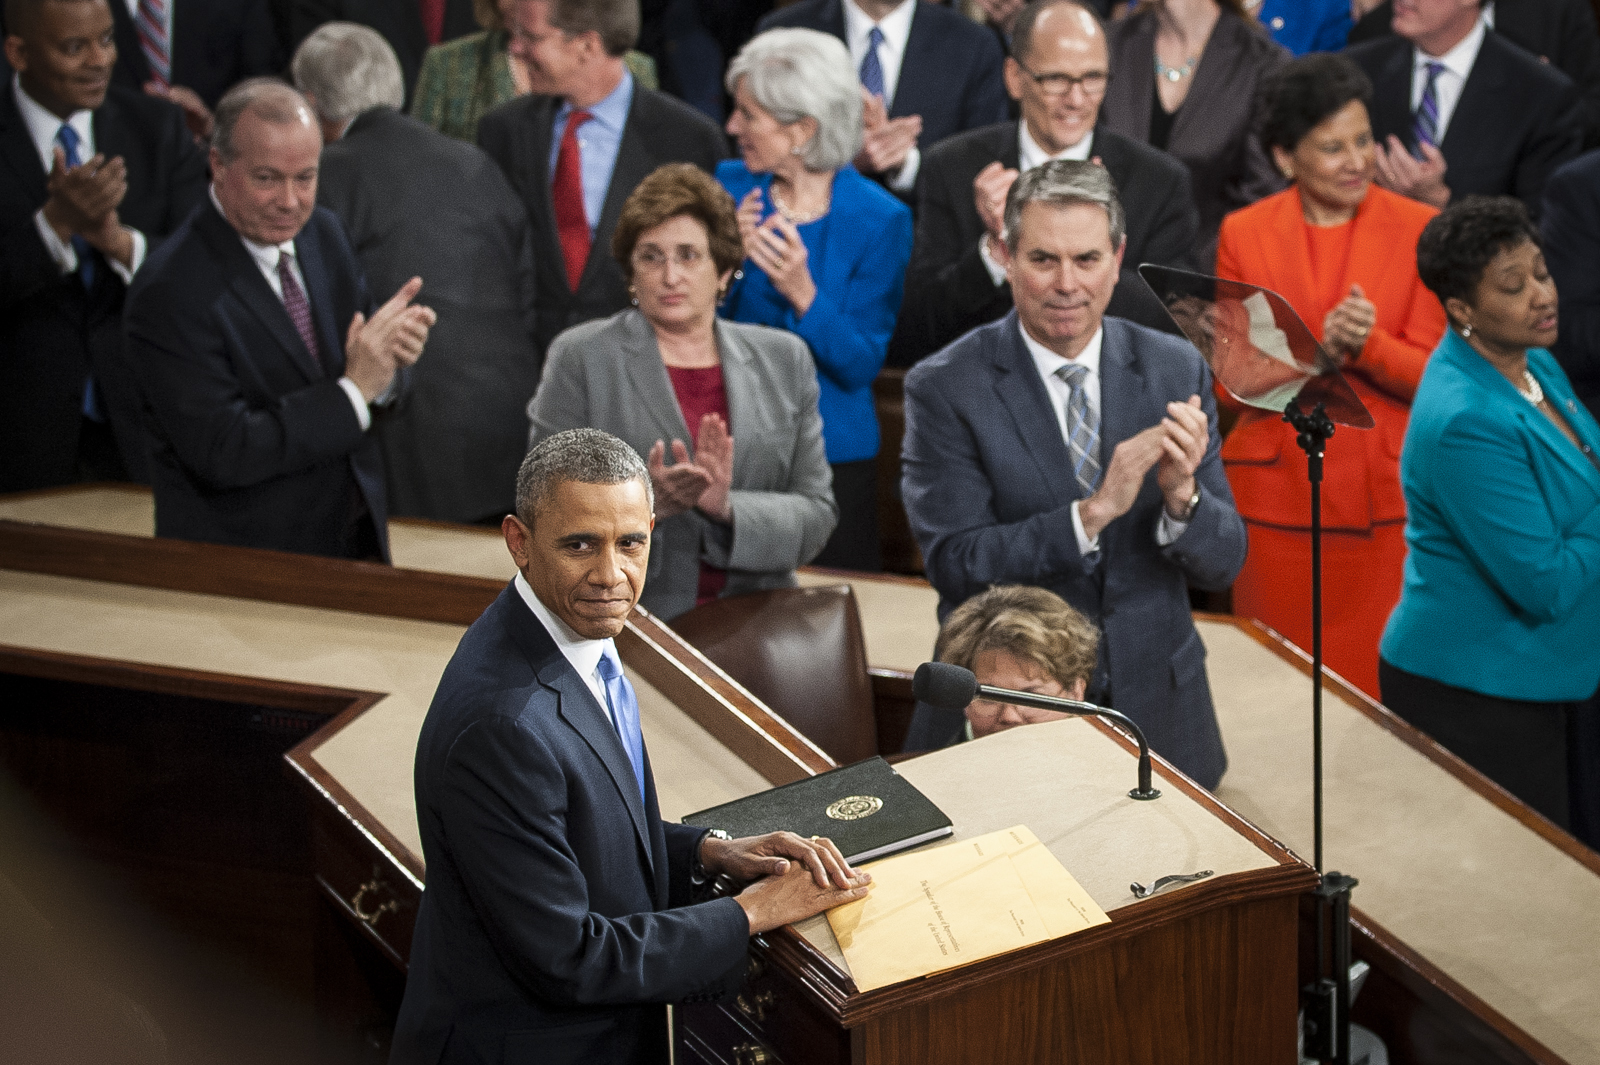 U.S. President Barack Obama prepares to deliver the State of the Union address to a joint session of Congress at the Capitol in Washington, D.C., U.S., on Tuesday, Jan. 28, 2014. Photographer: Pete Marovich/Bloomberg